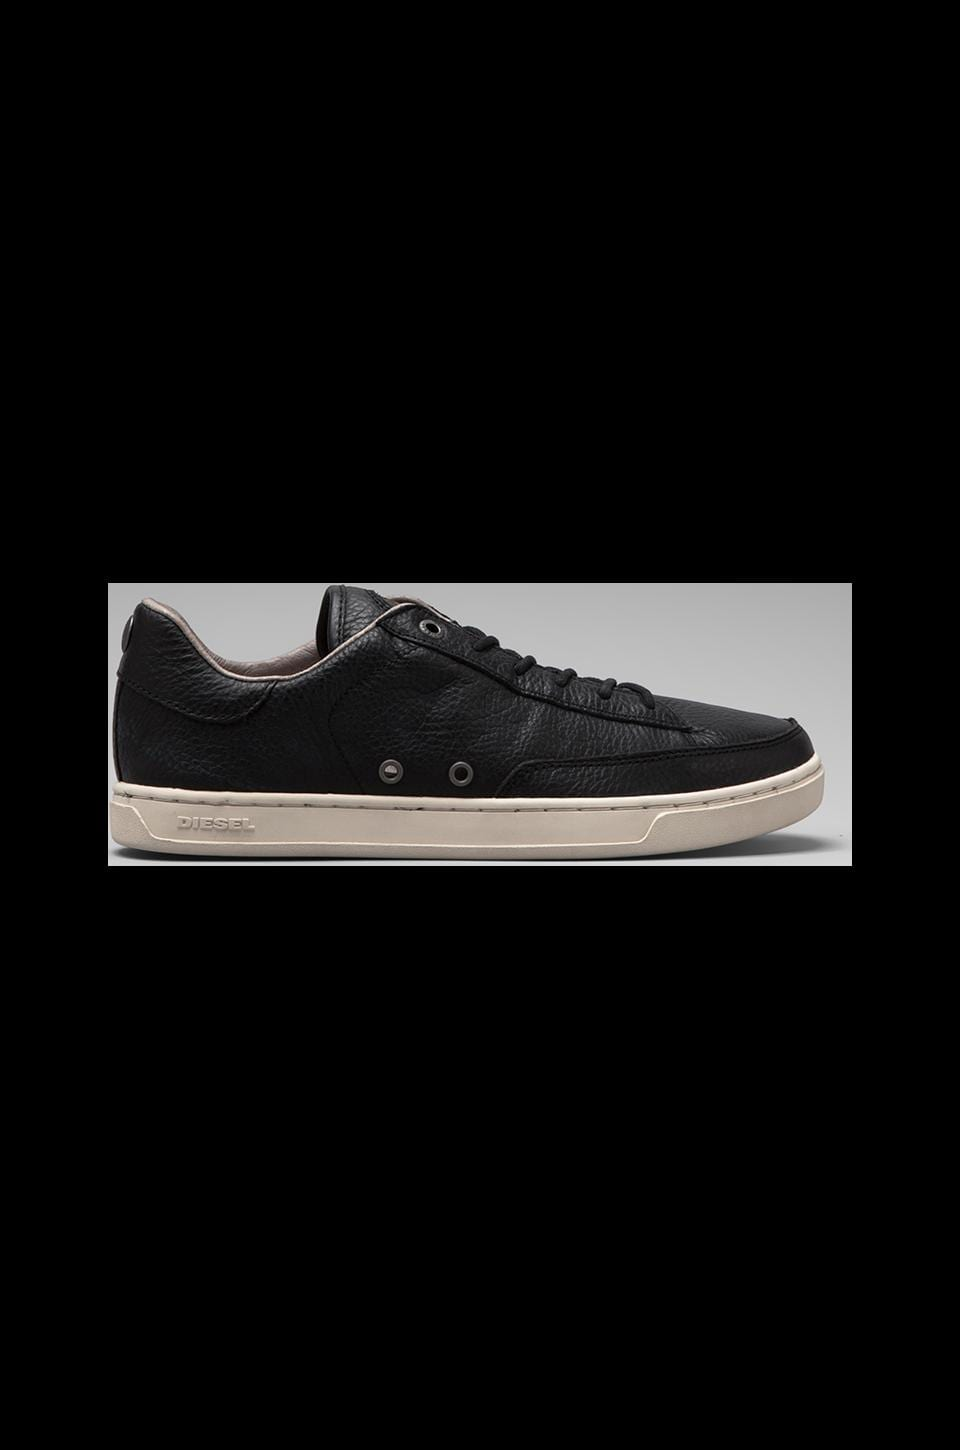 Diesel The Great Beyond Lo-Culture Sneaker in Black